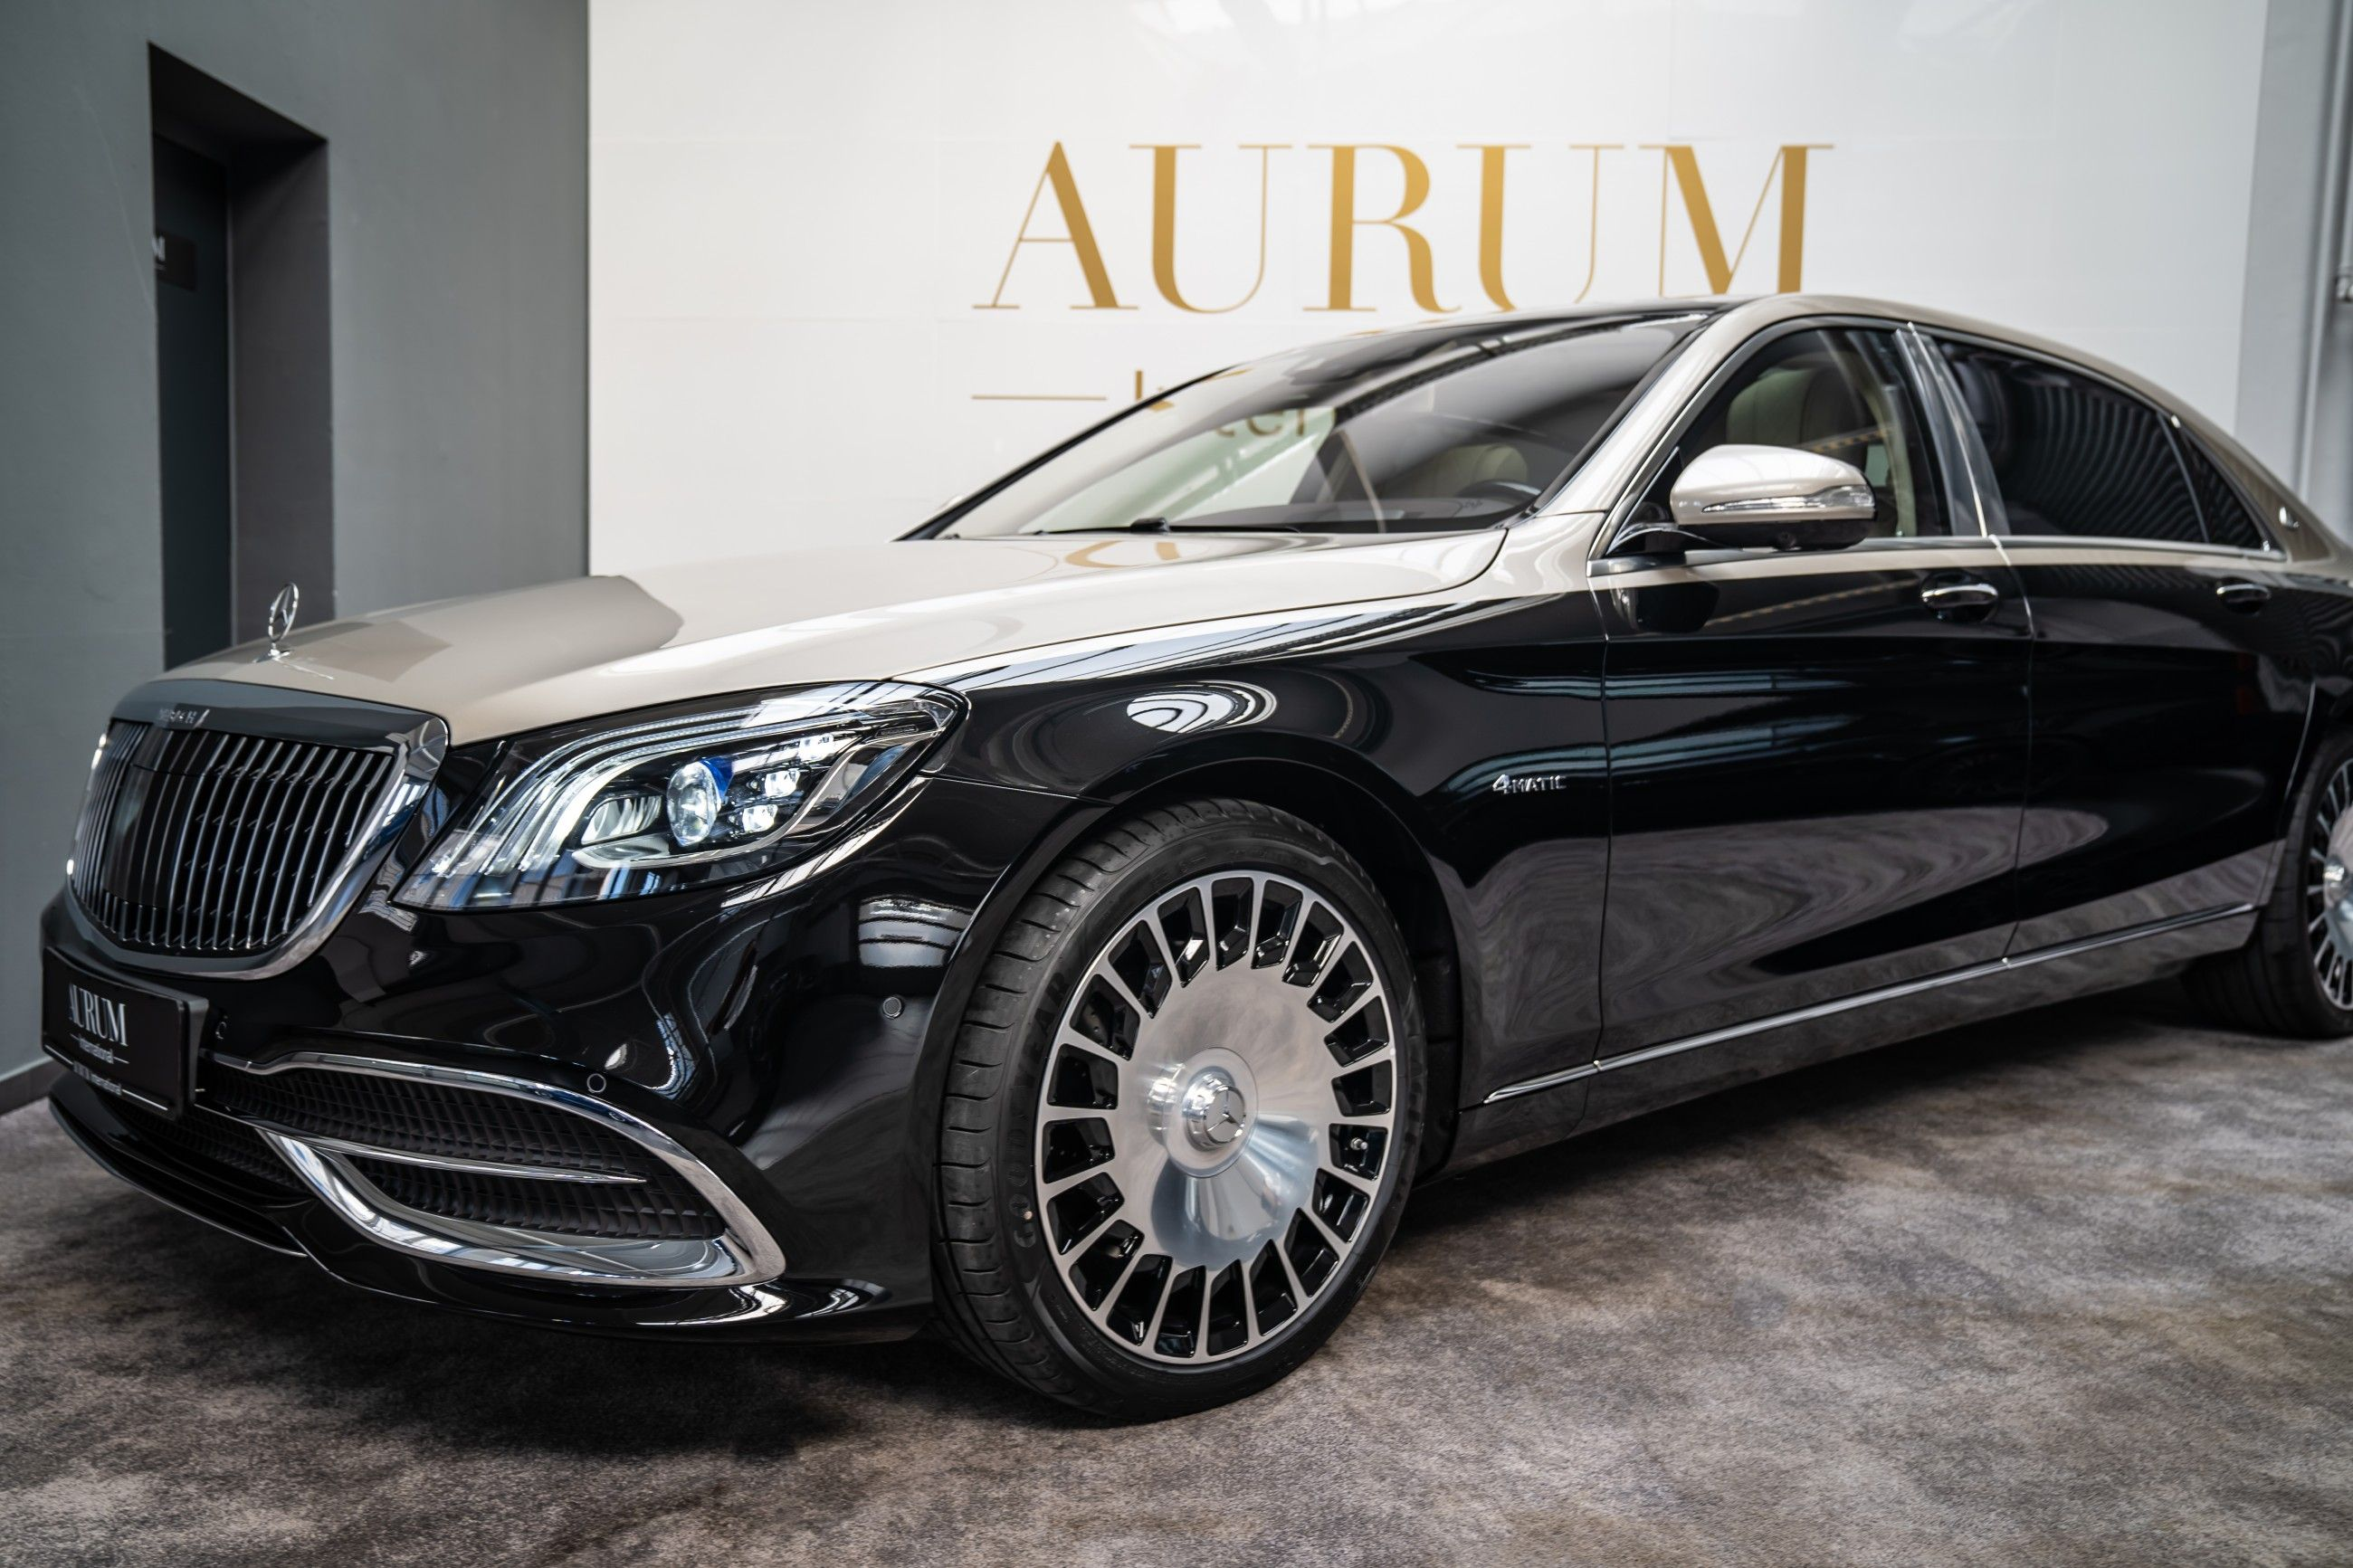 Mercedes Maybach S 560 4matic Aurum International Germany For Sale On Luxurypulse Mercedes Maybach Maybach Mercedes